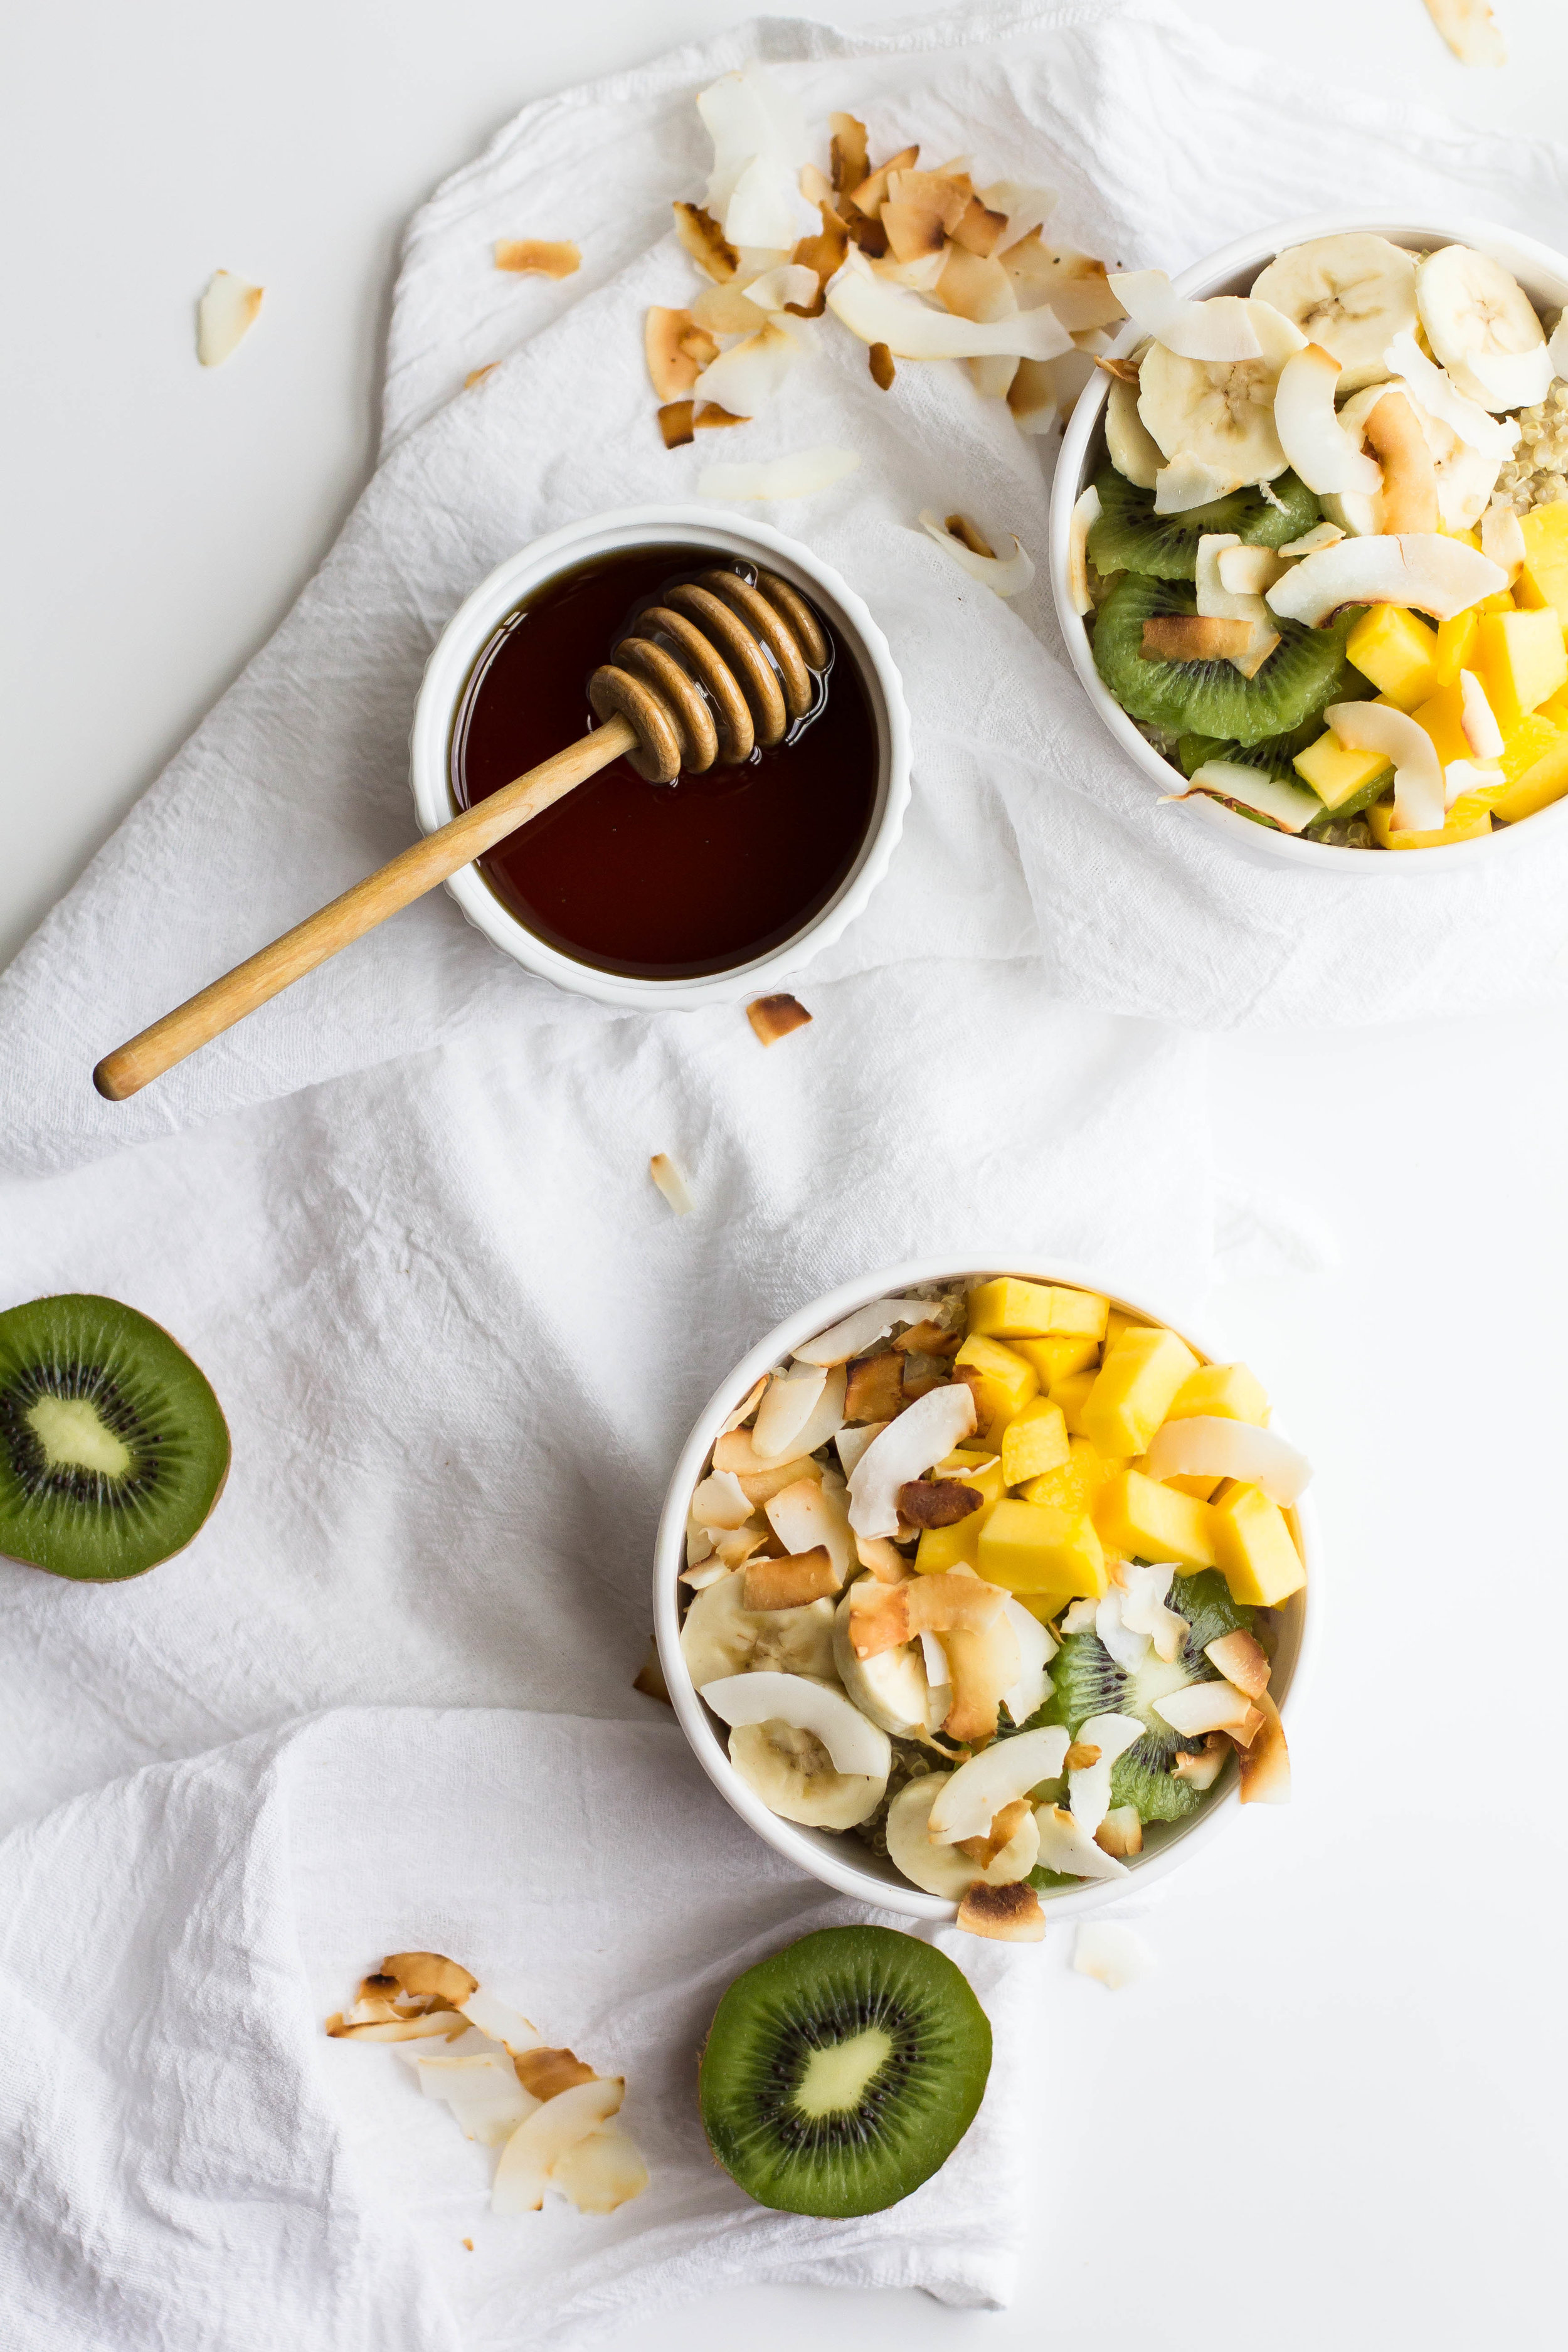 Tropical Quinoa Breakfast Bowl - Sarah J. Hauser